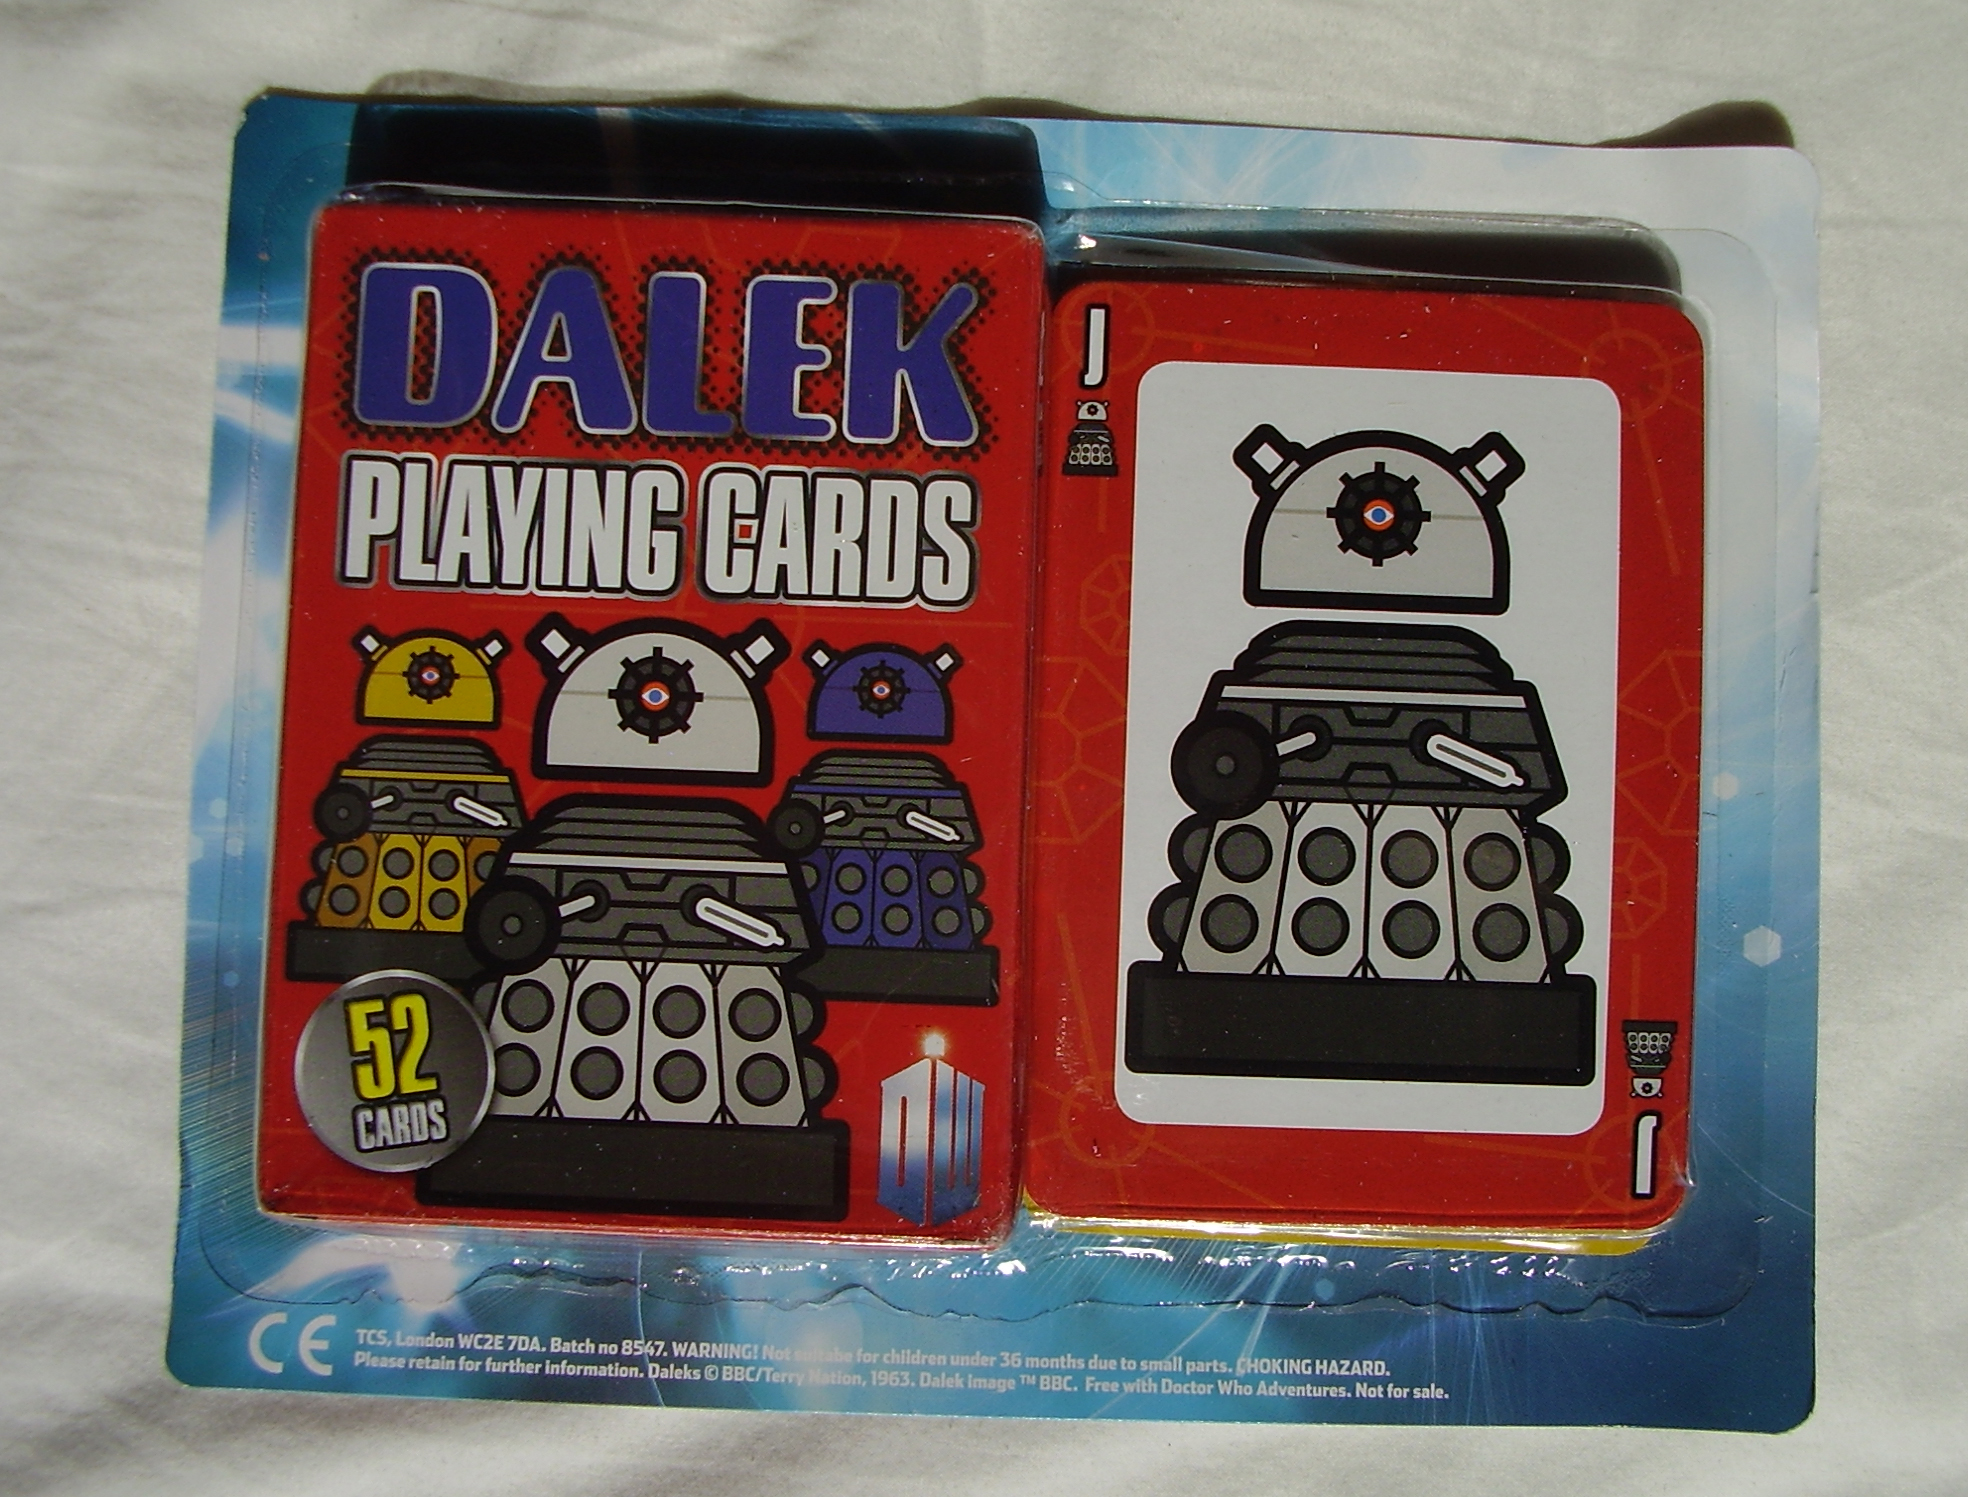 Dalek Playing Cards